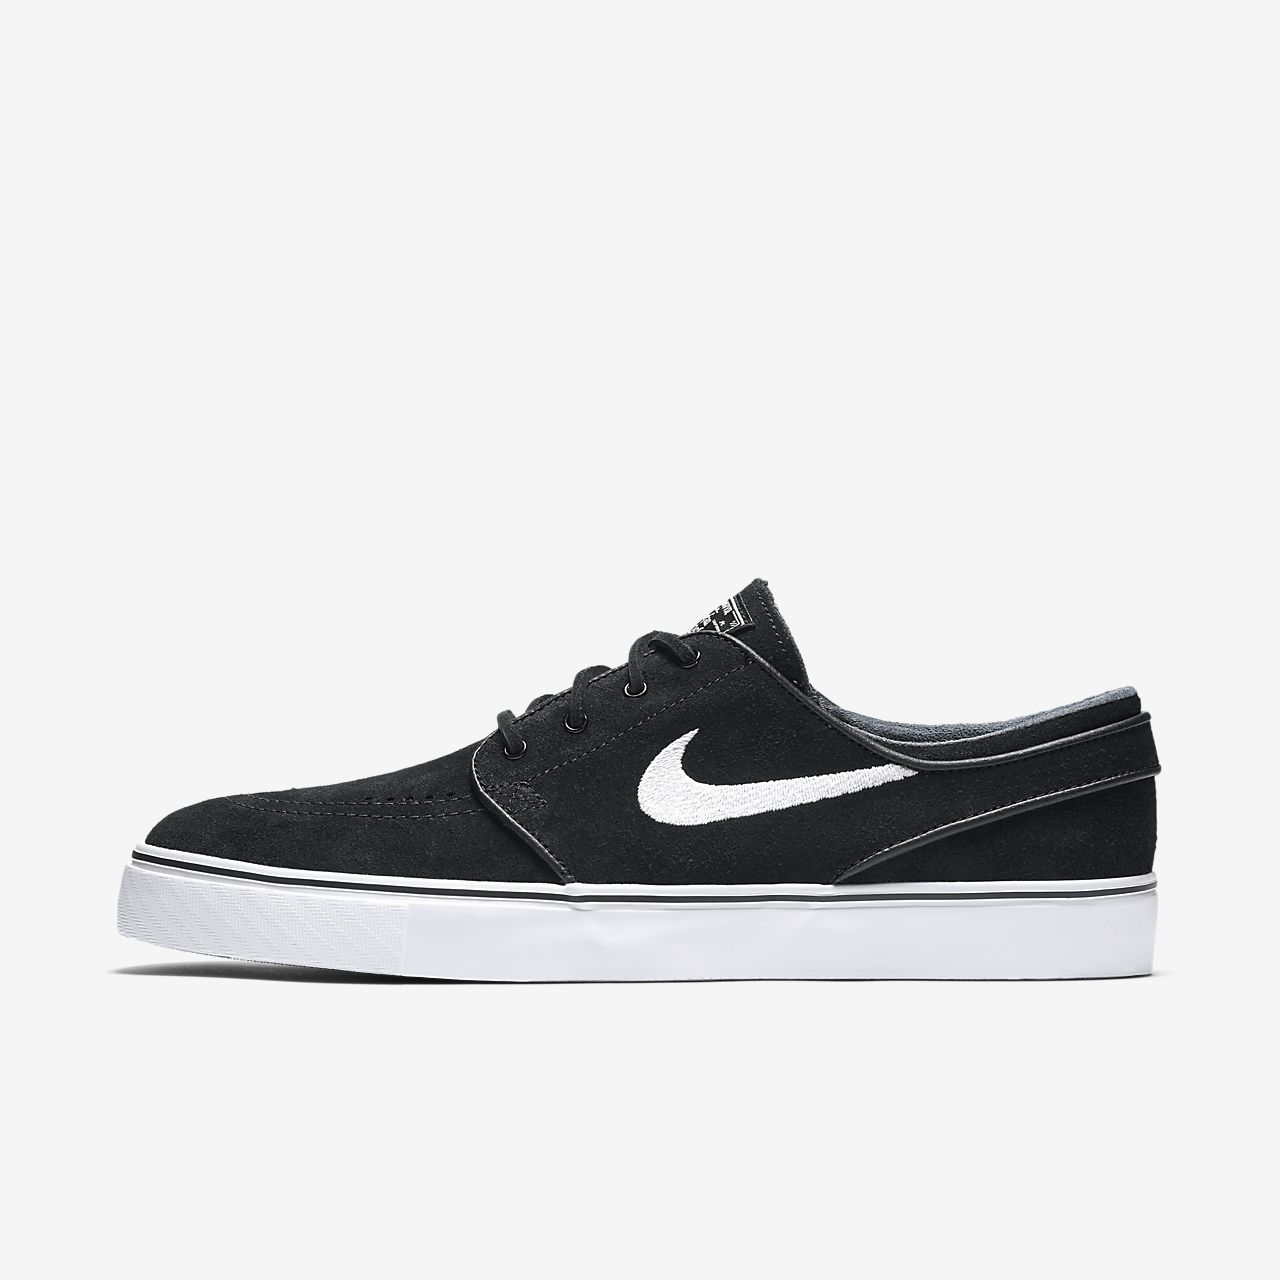 Nike SB Zoom Stefan Janoski Canvas Men's Skateboarding Shoes Black/Brown/White gU7149B